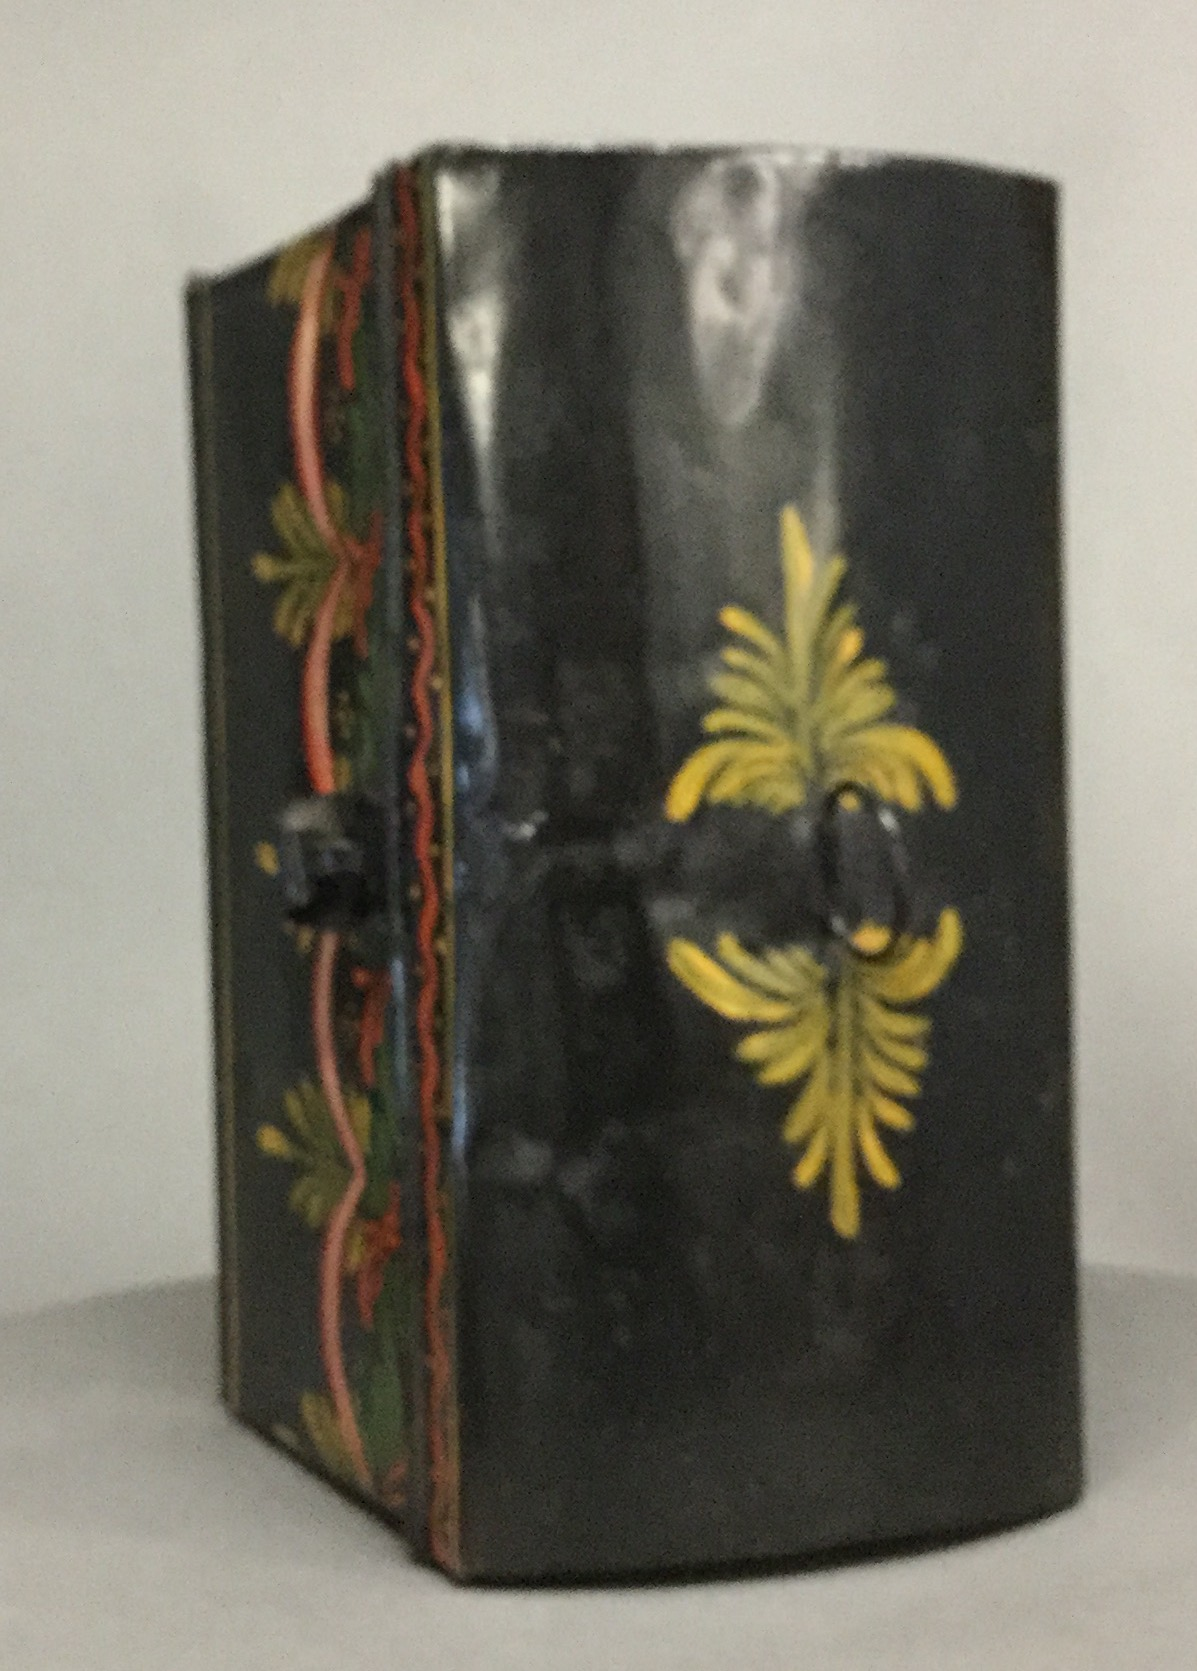 Antique-Tole-Painted-Document-Box_63324G.jpg